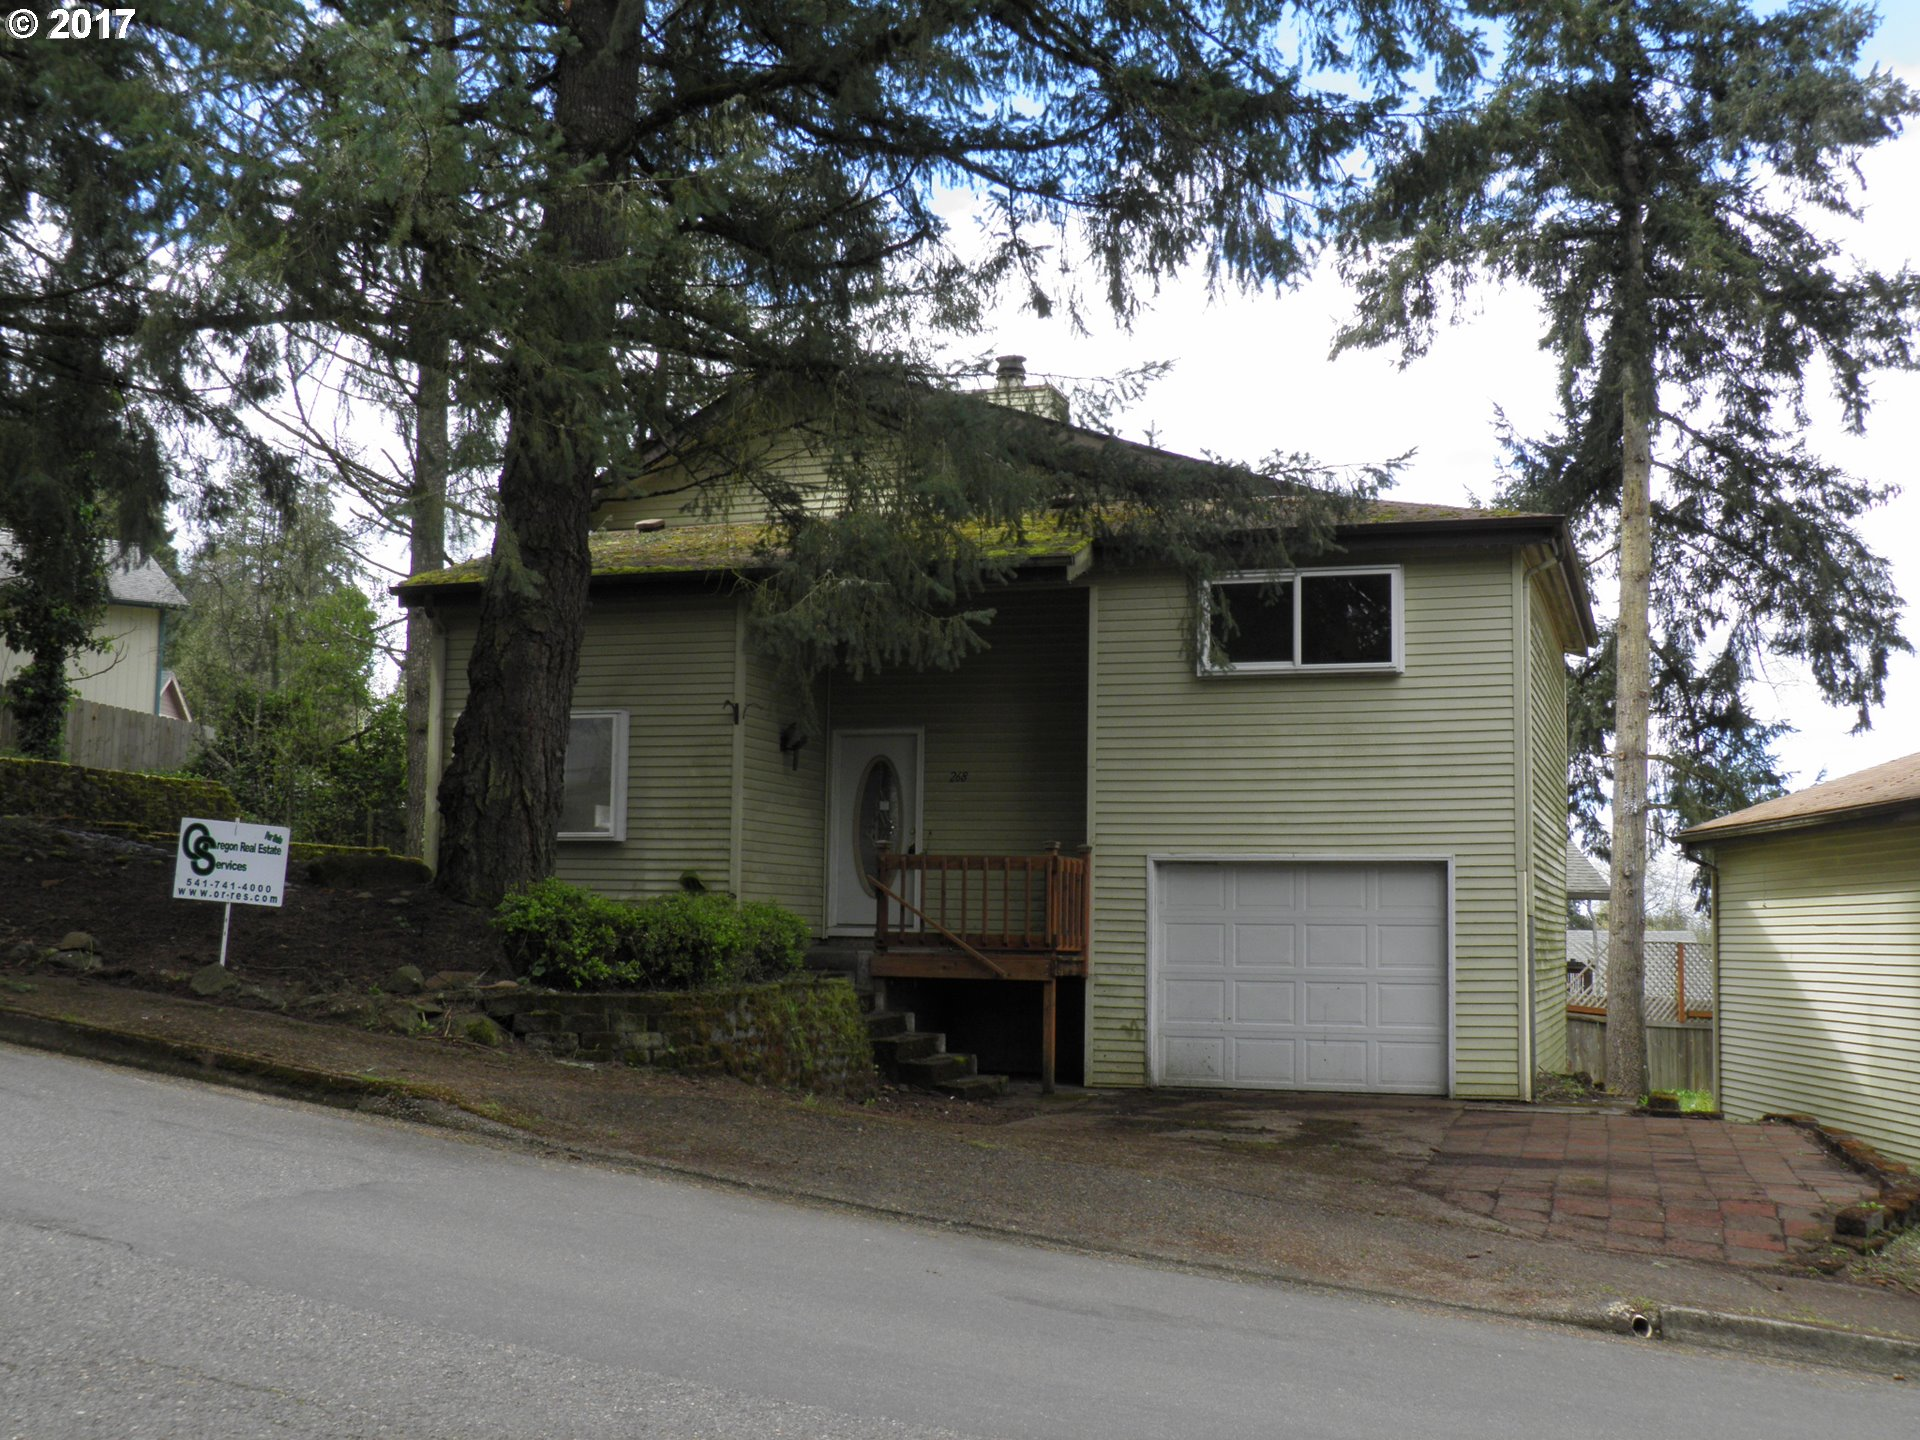 268 S 68TH PL, Springfield OR 97478